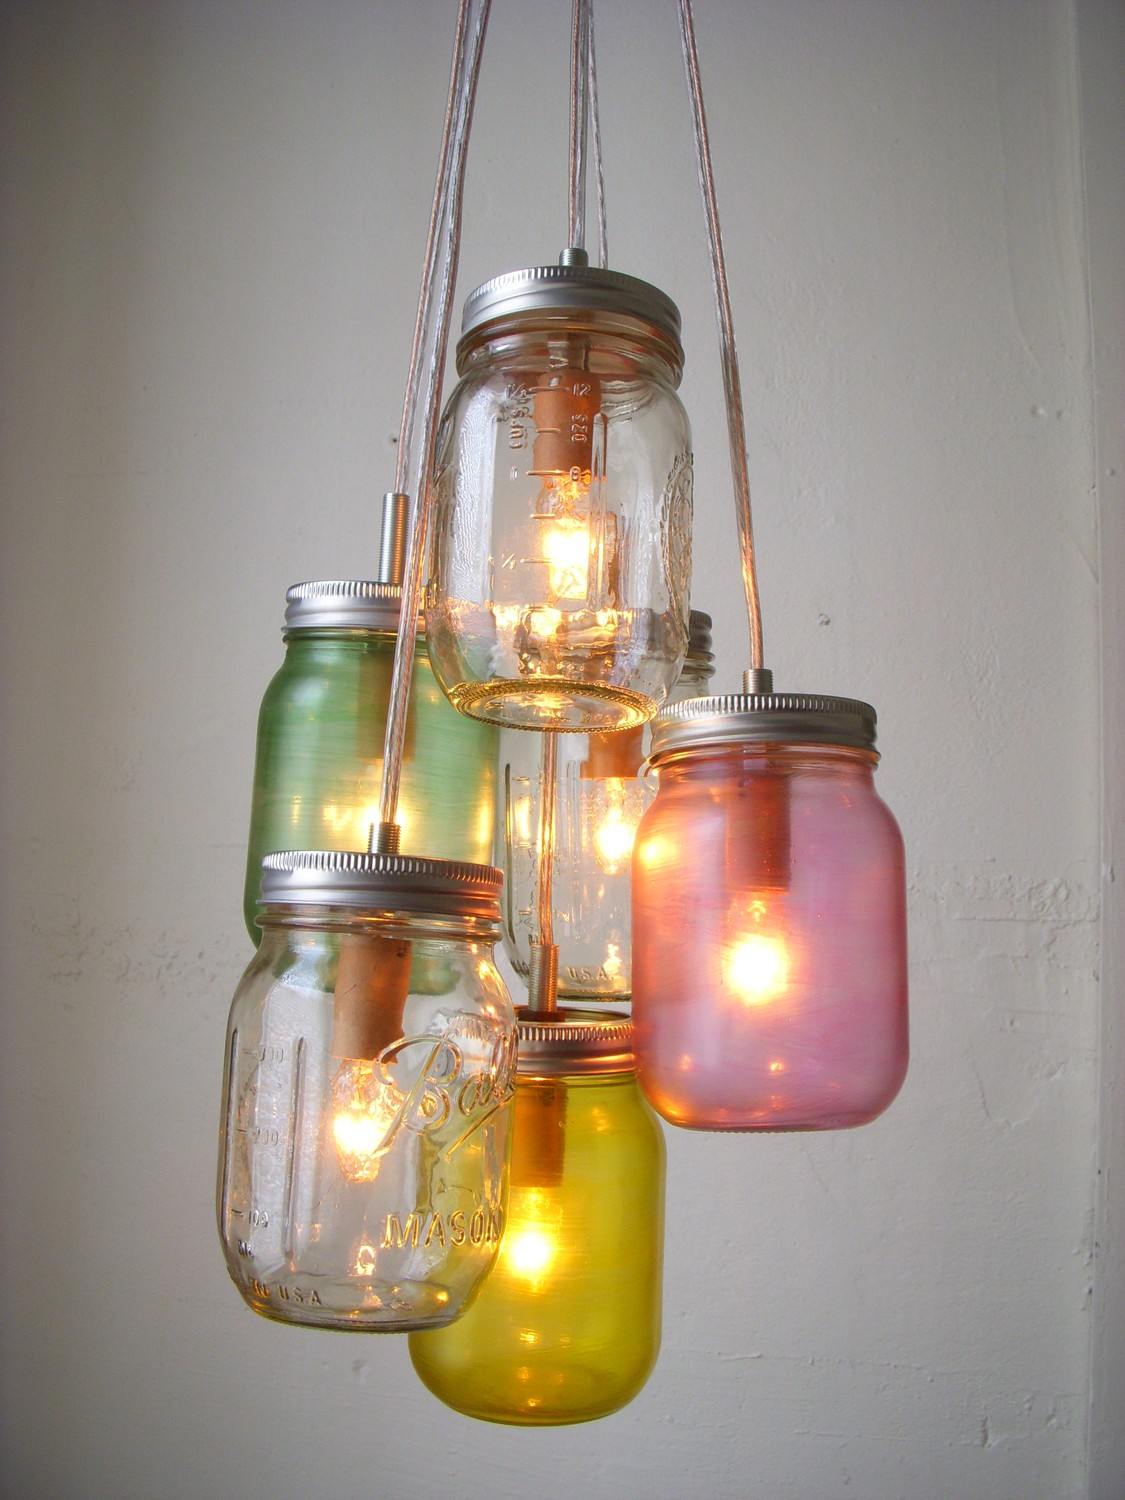 Vintage-wedding-ideas-mason-jar-chandeliers.original